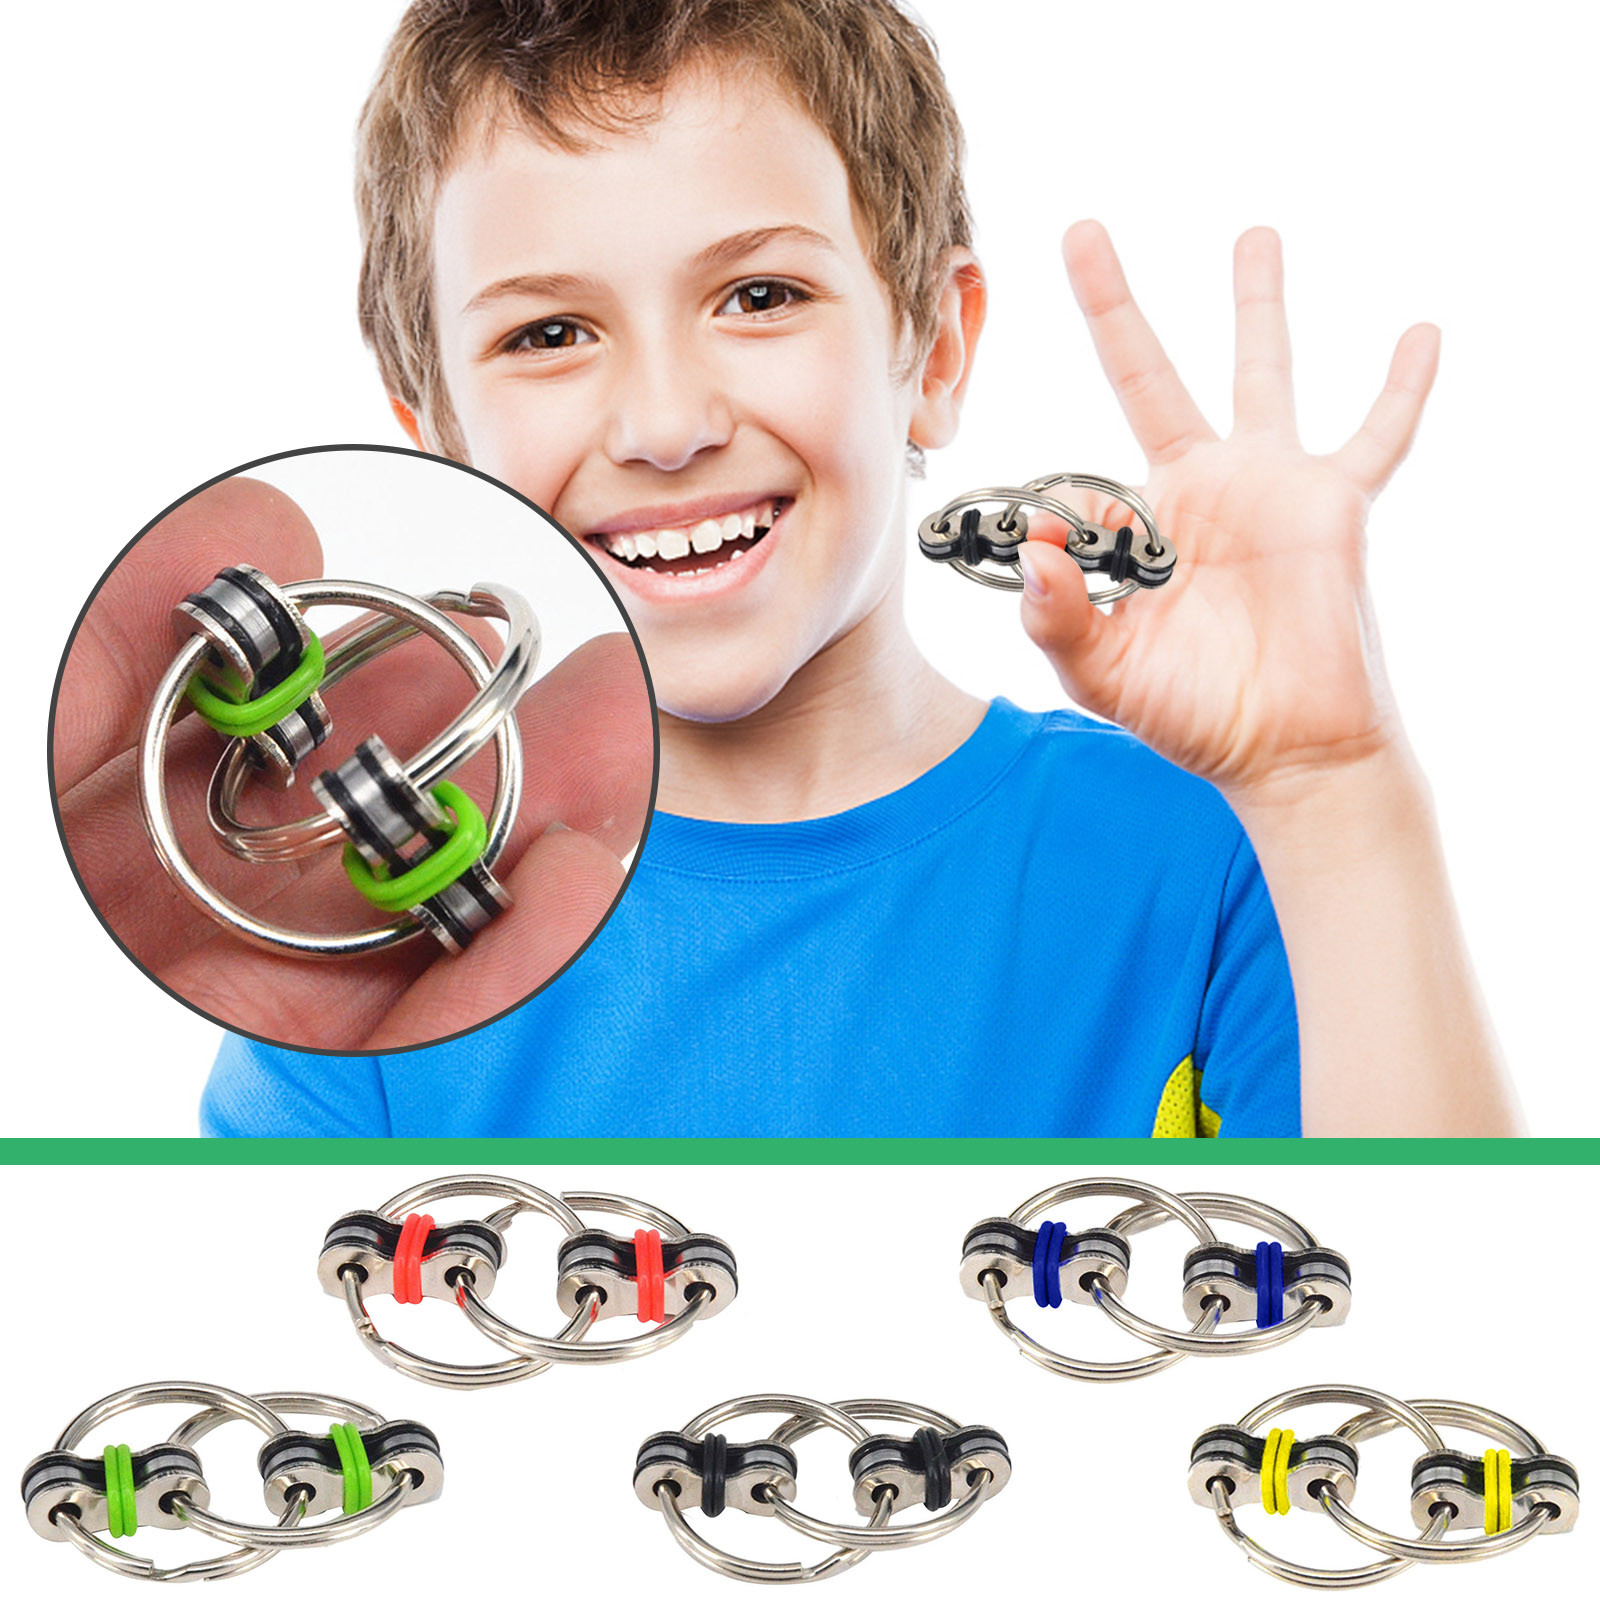 Toys Bike-Chain Fidget-Toy Autism Stress ADHD 5-Colors Hands Children for Funny Creative img3